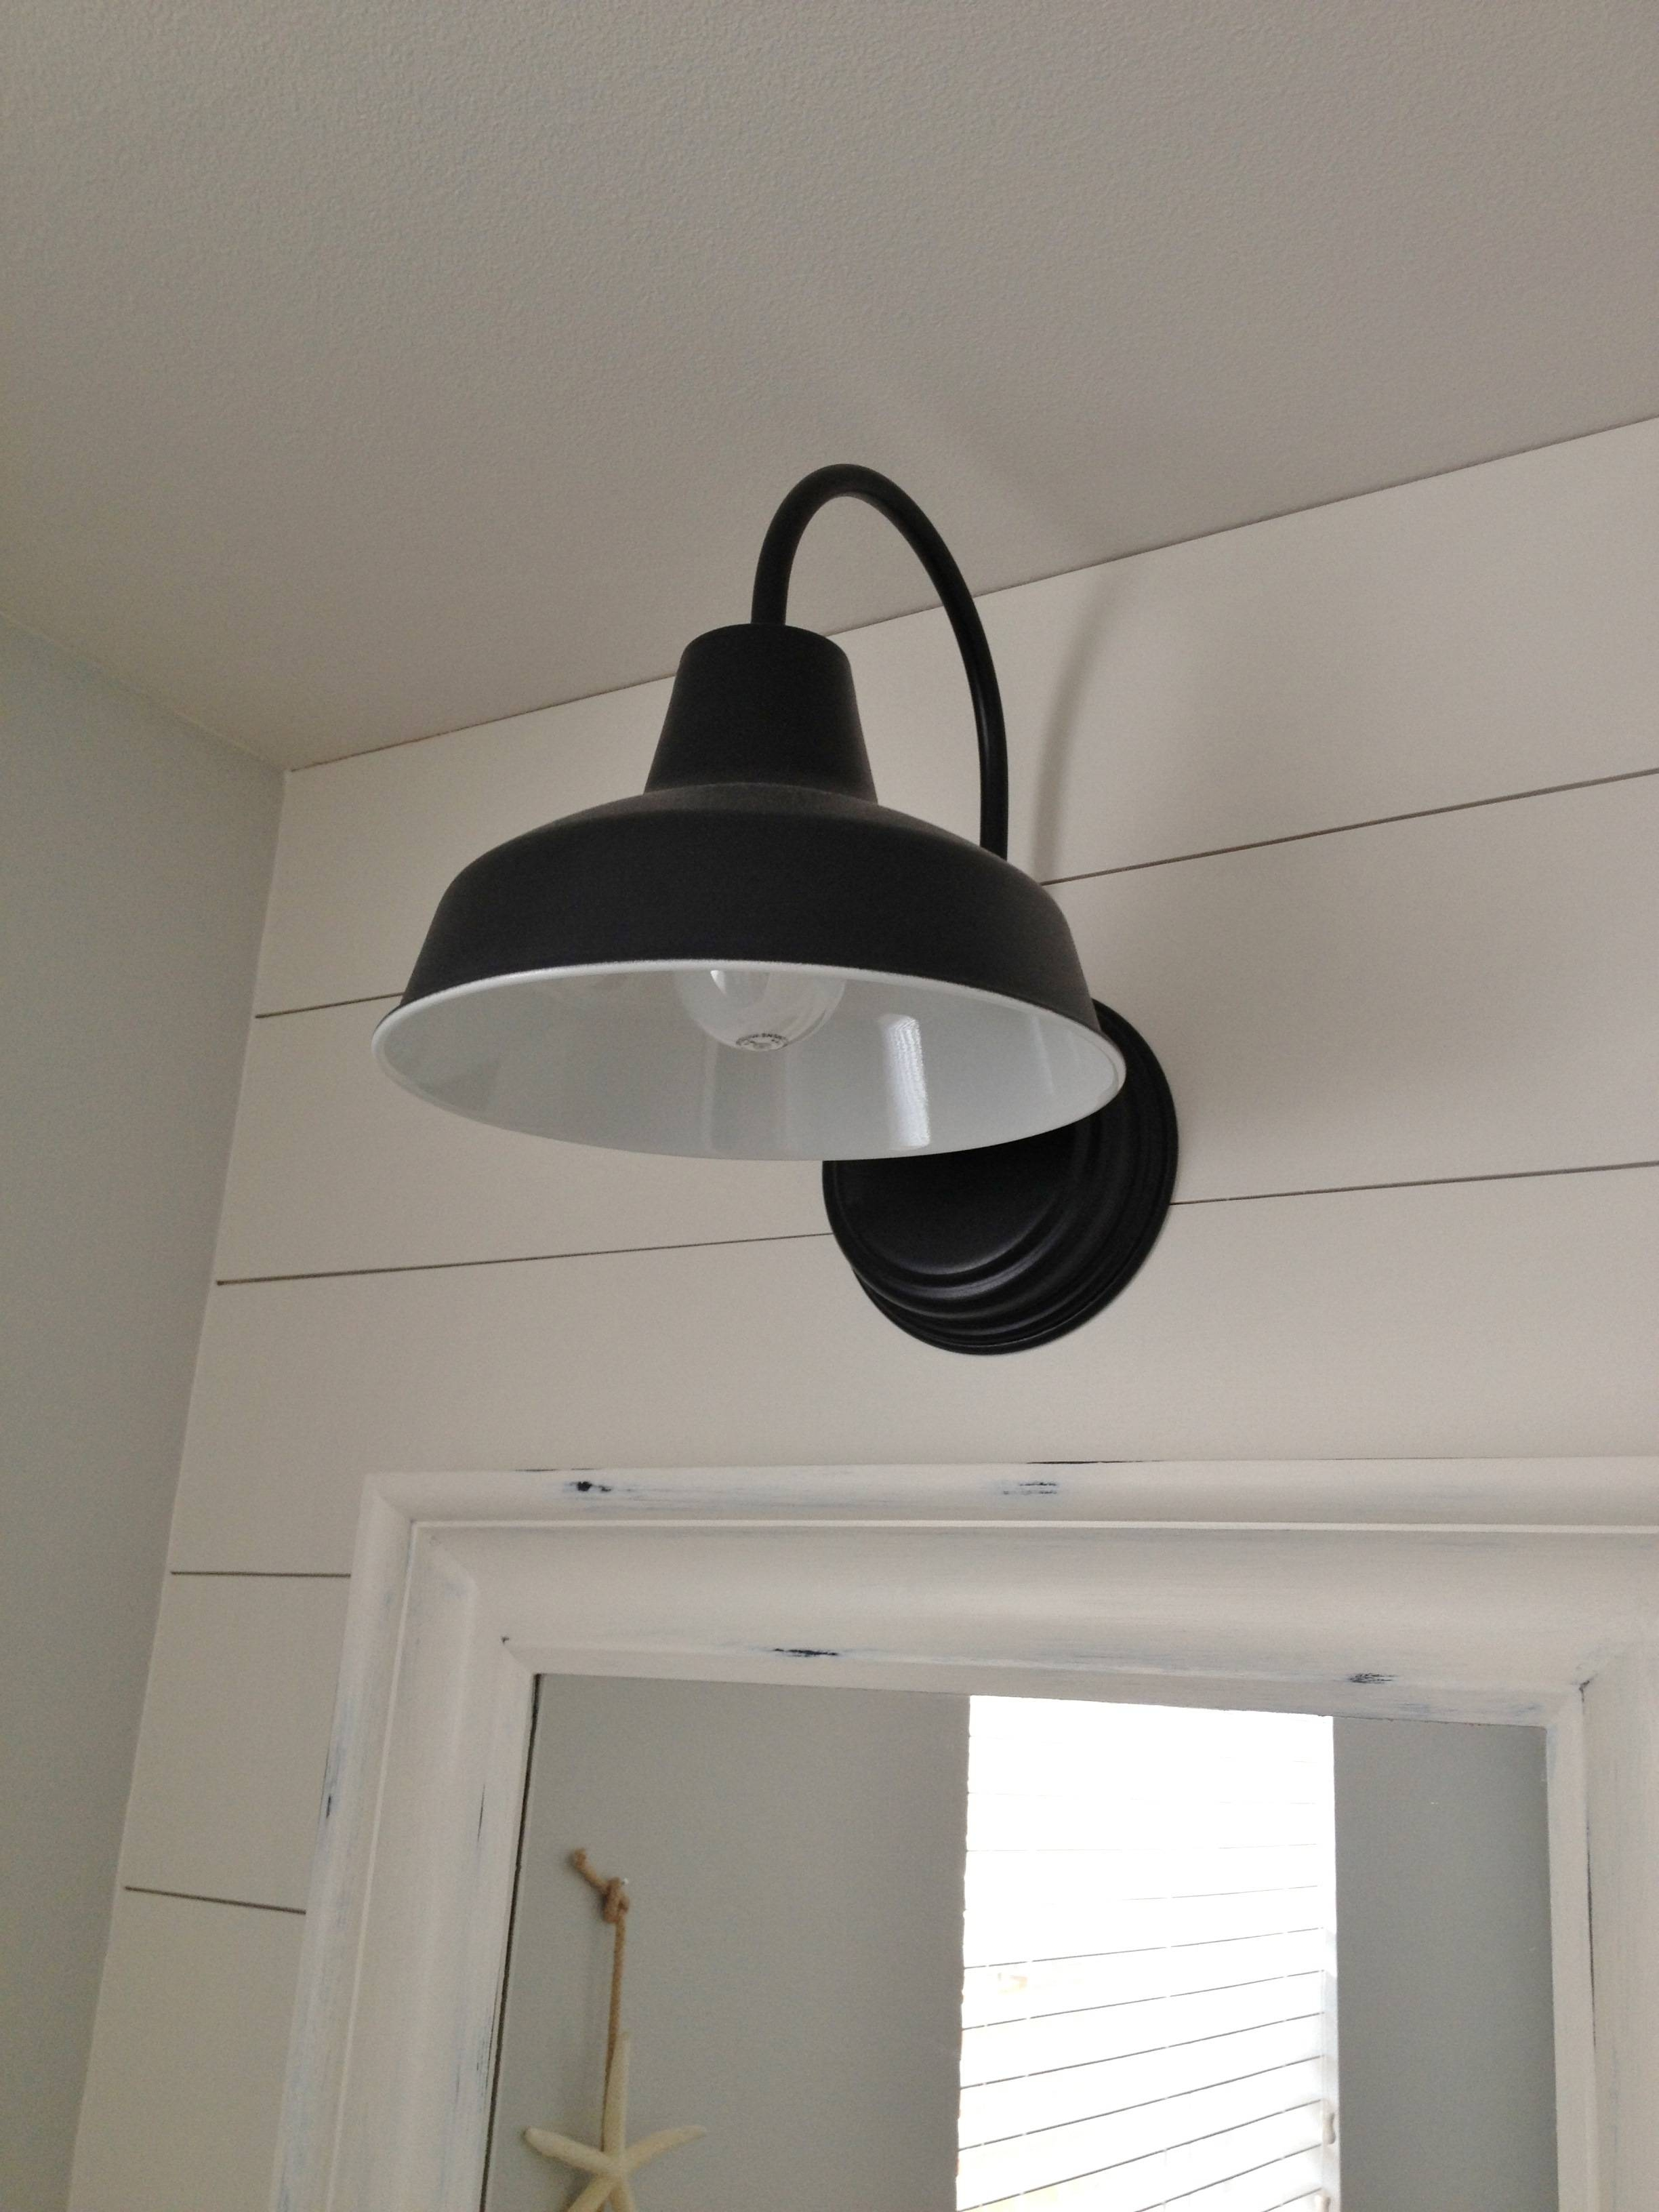 Barn Wall Sconce Lends Farmhouse Look To Powder Room Remake | Blog With Galvanized Pendant Barn Lights (View 11 of 15)